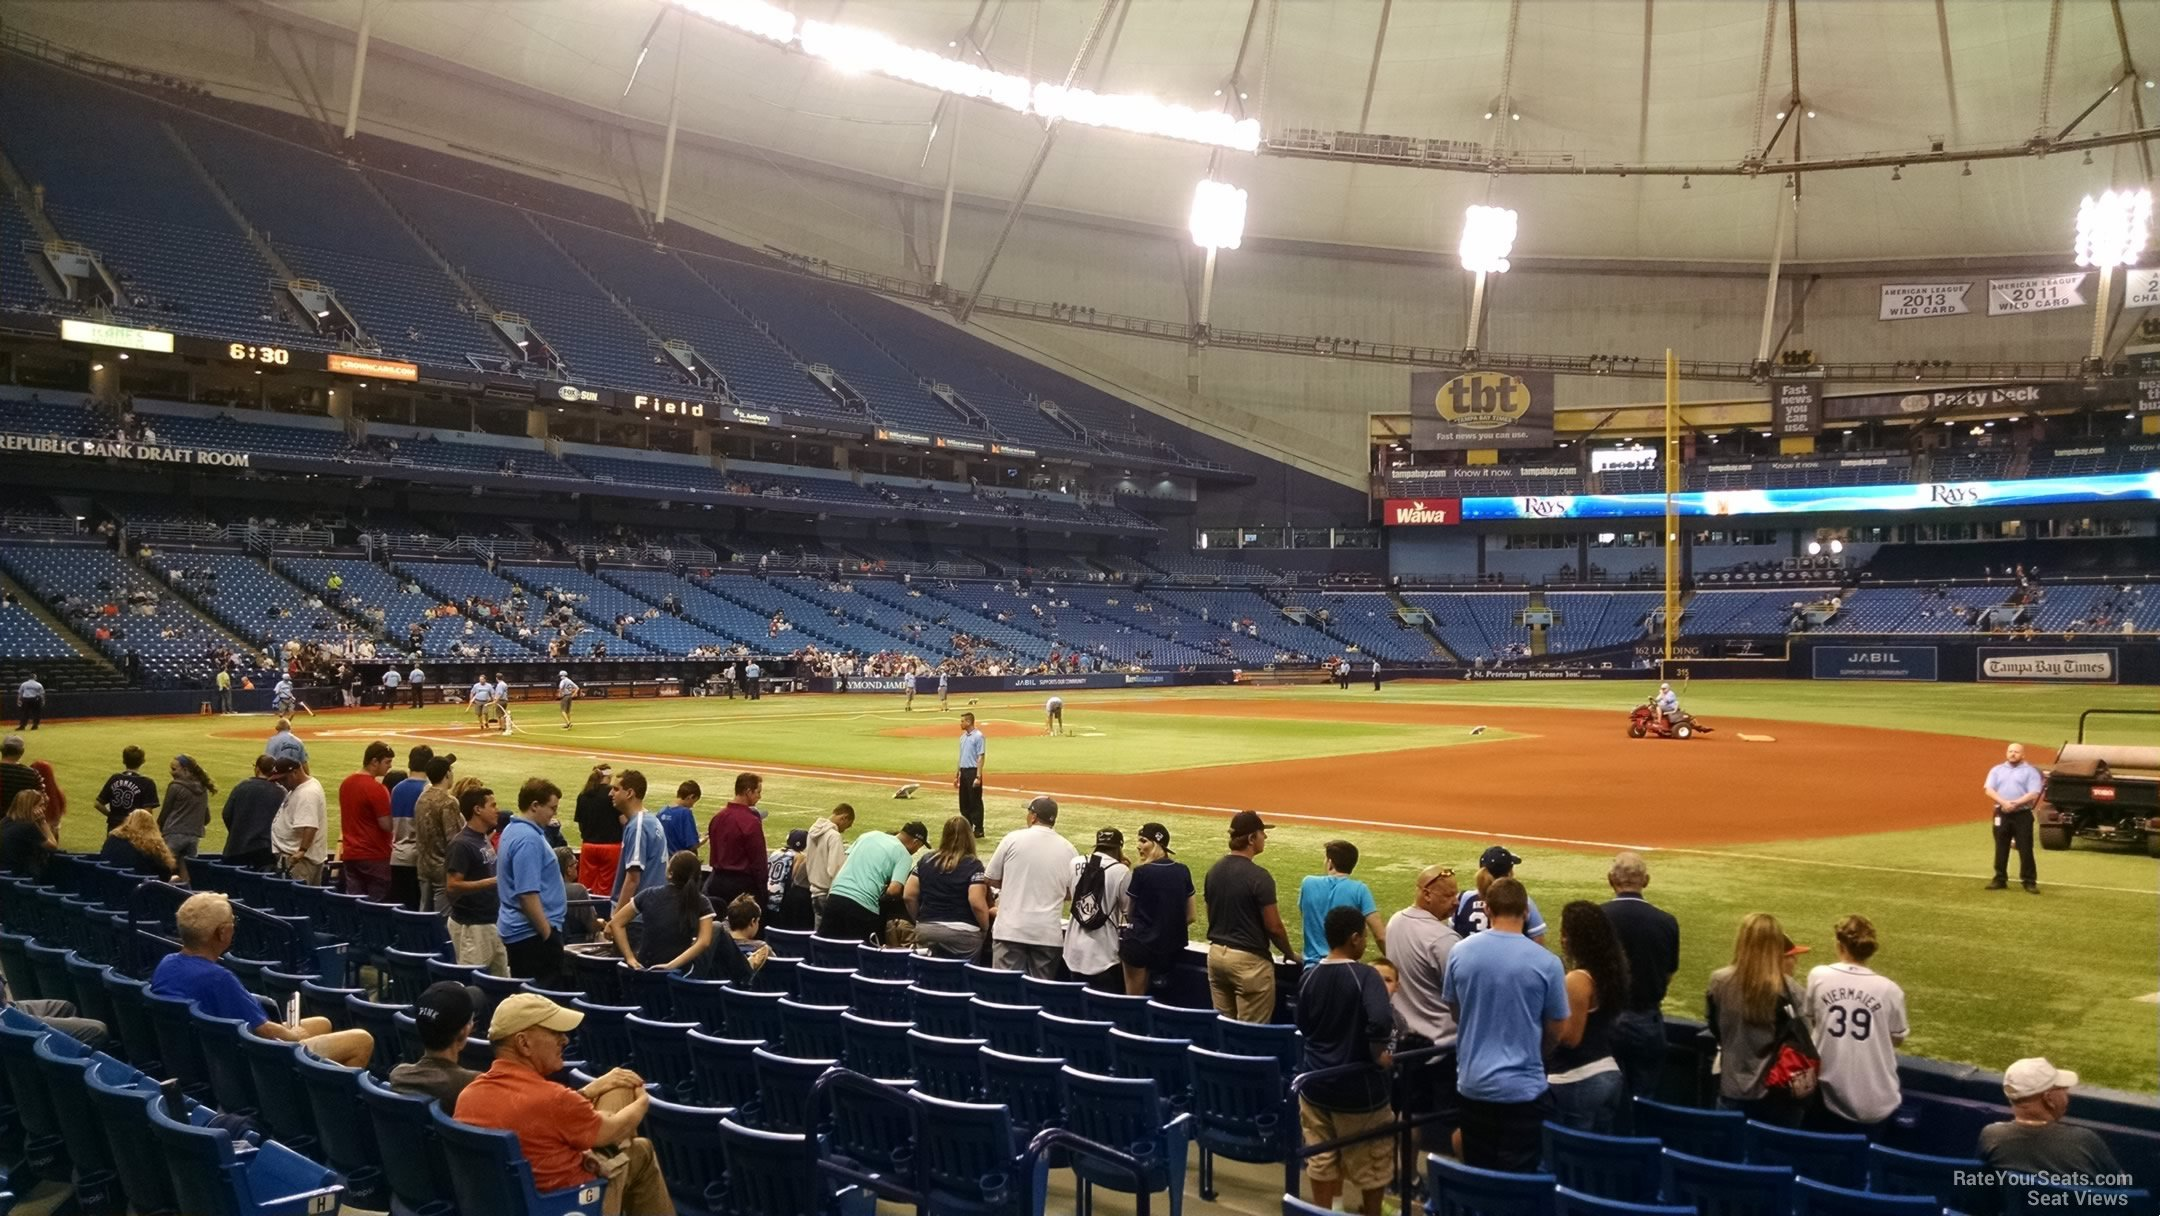 Third Row Seating >> Tropicana Field Section 124 - Tampa Bay Rays - RateYourSeats.com